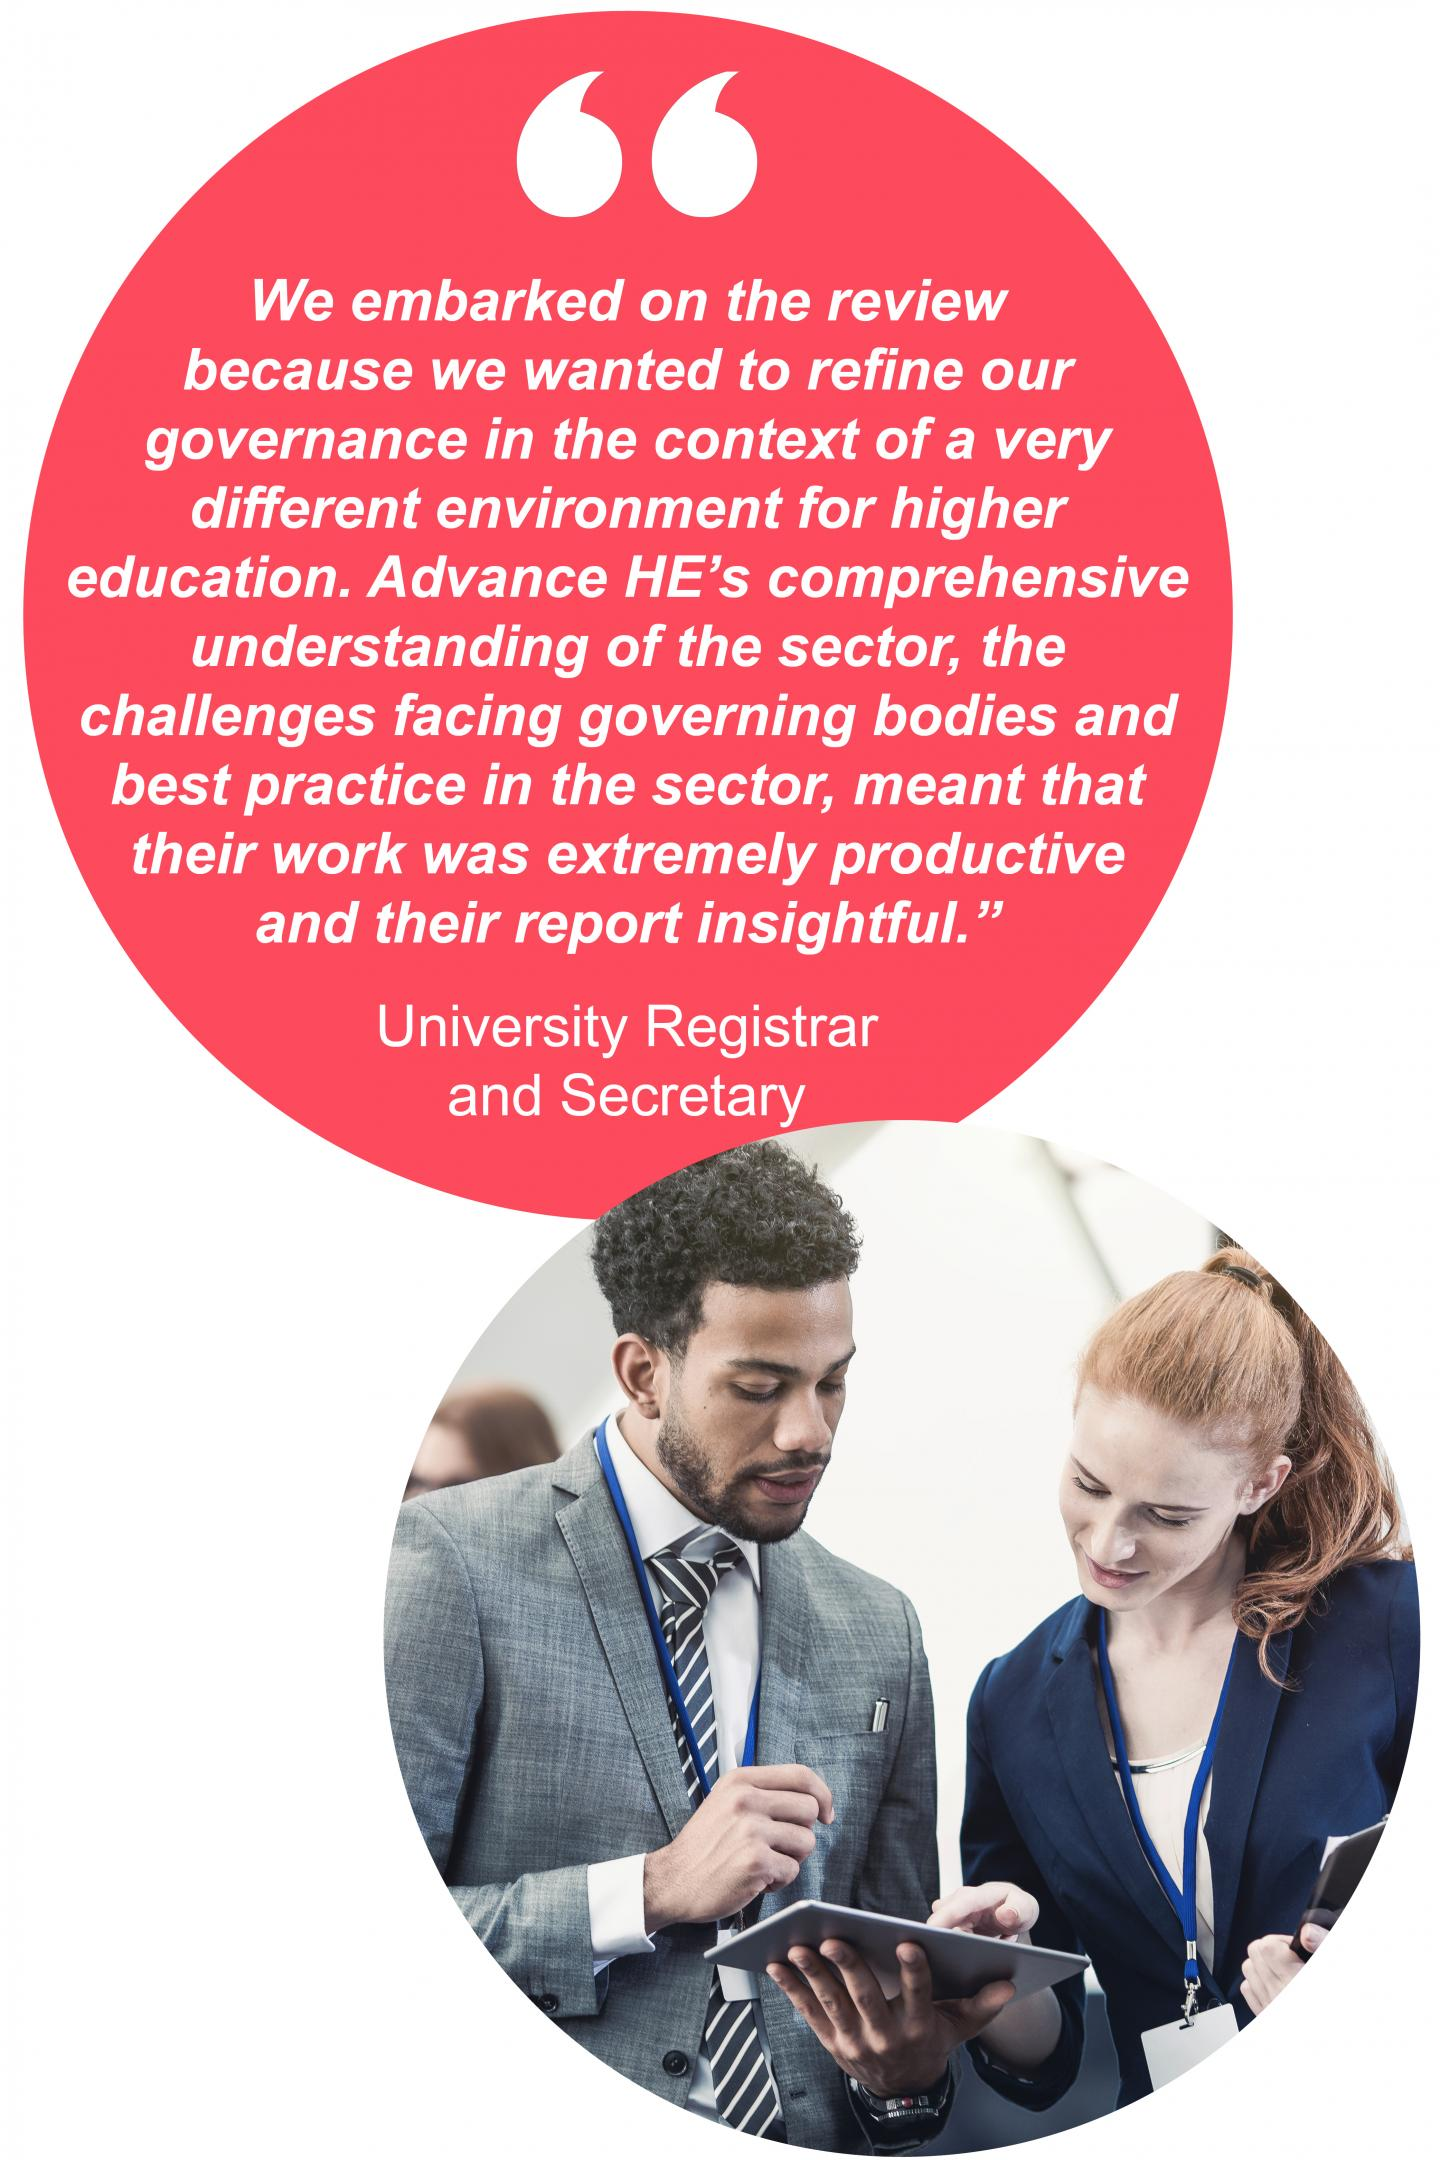 """We embarked on the review  because we wanted to refine our  governance in the context of a very  different environment for higher  education. Advance HE's comprehensive  understanding of the sector, the  challenges facing governing bodies and best practice in the sector, meant that their work was extremely productive and their report insightful.""  University Registrar and Secretary"